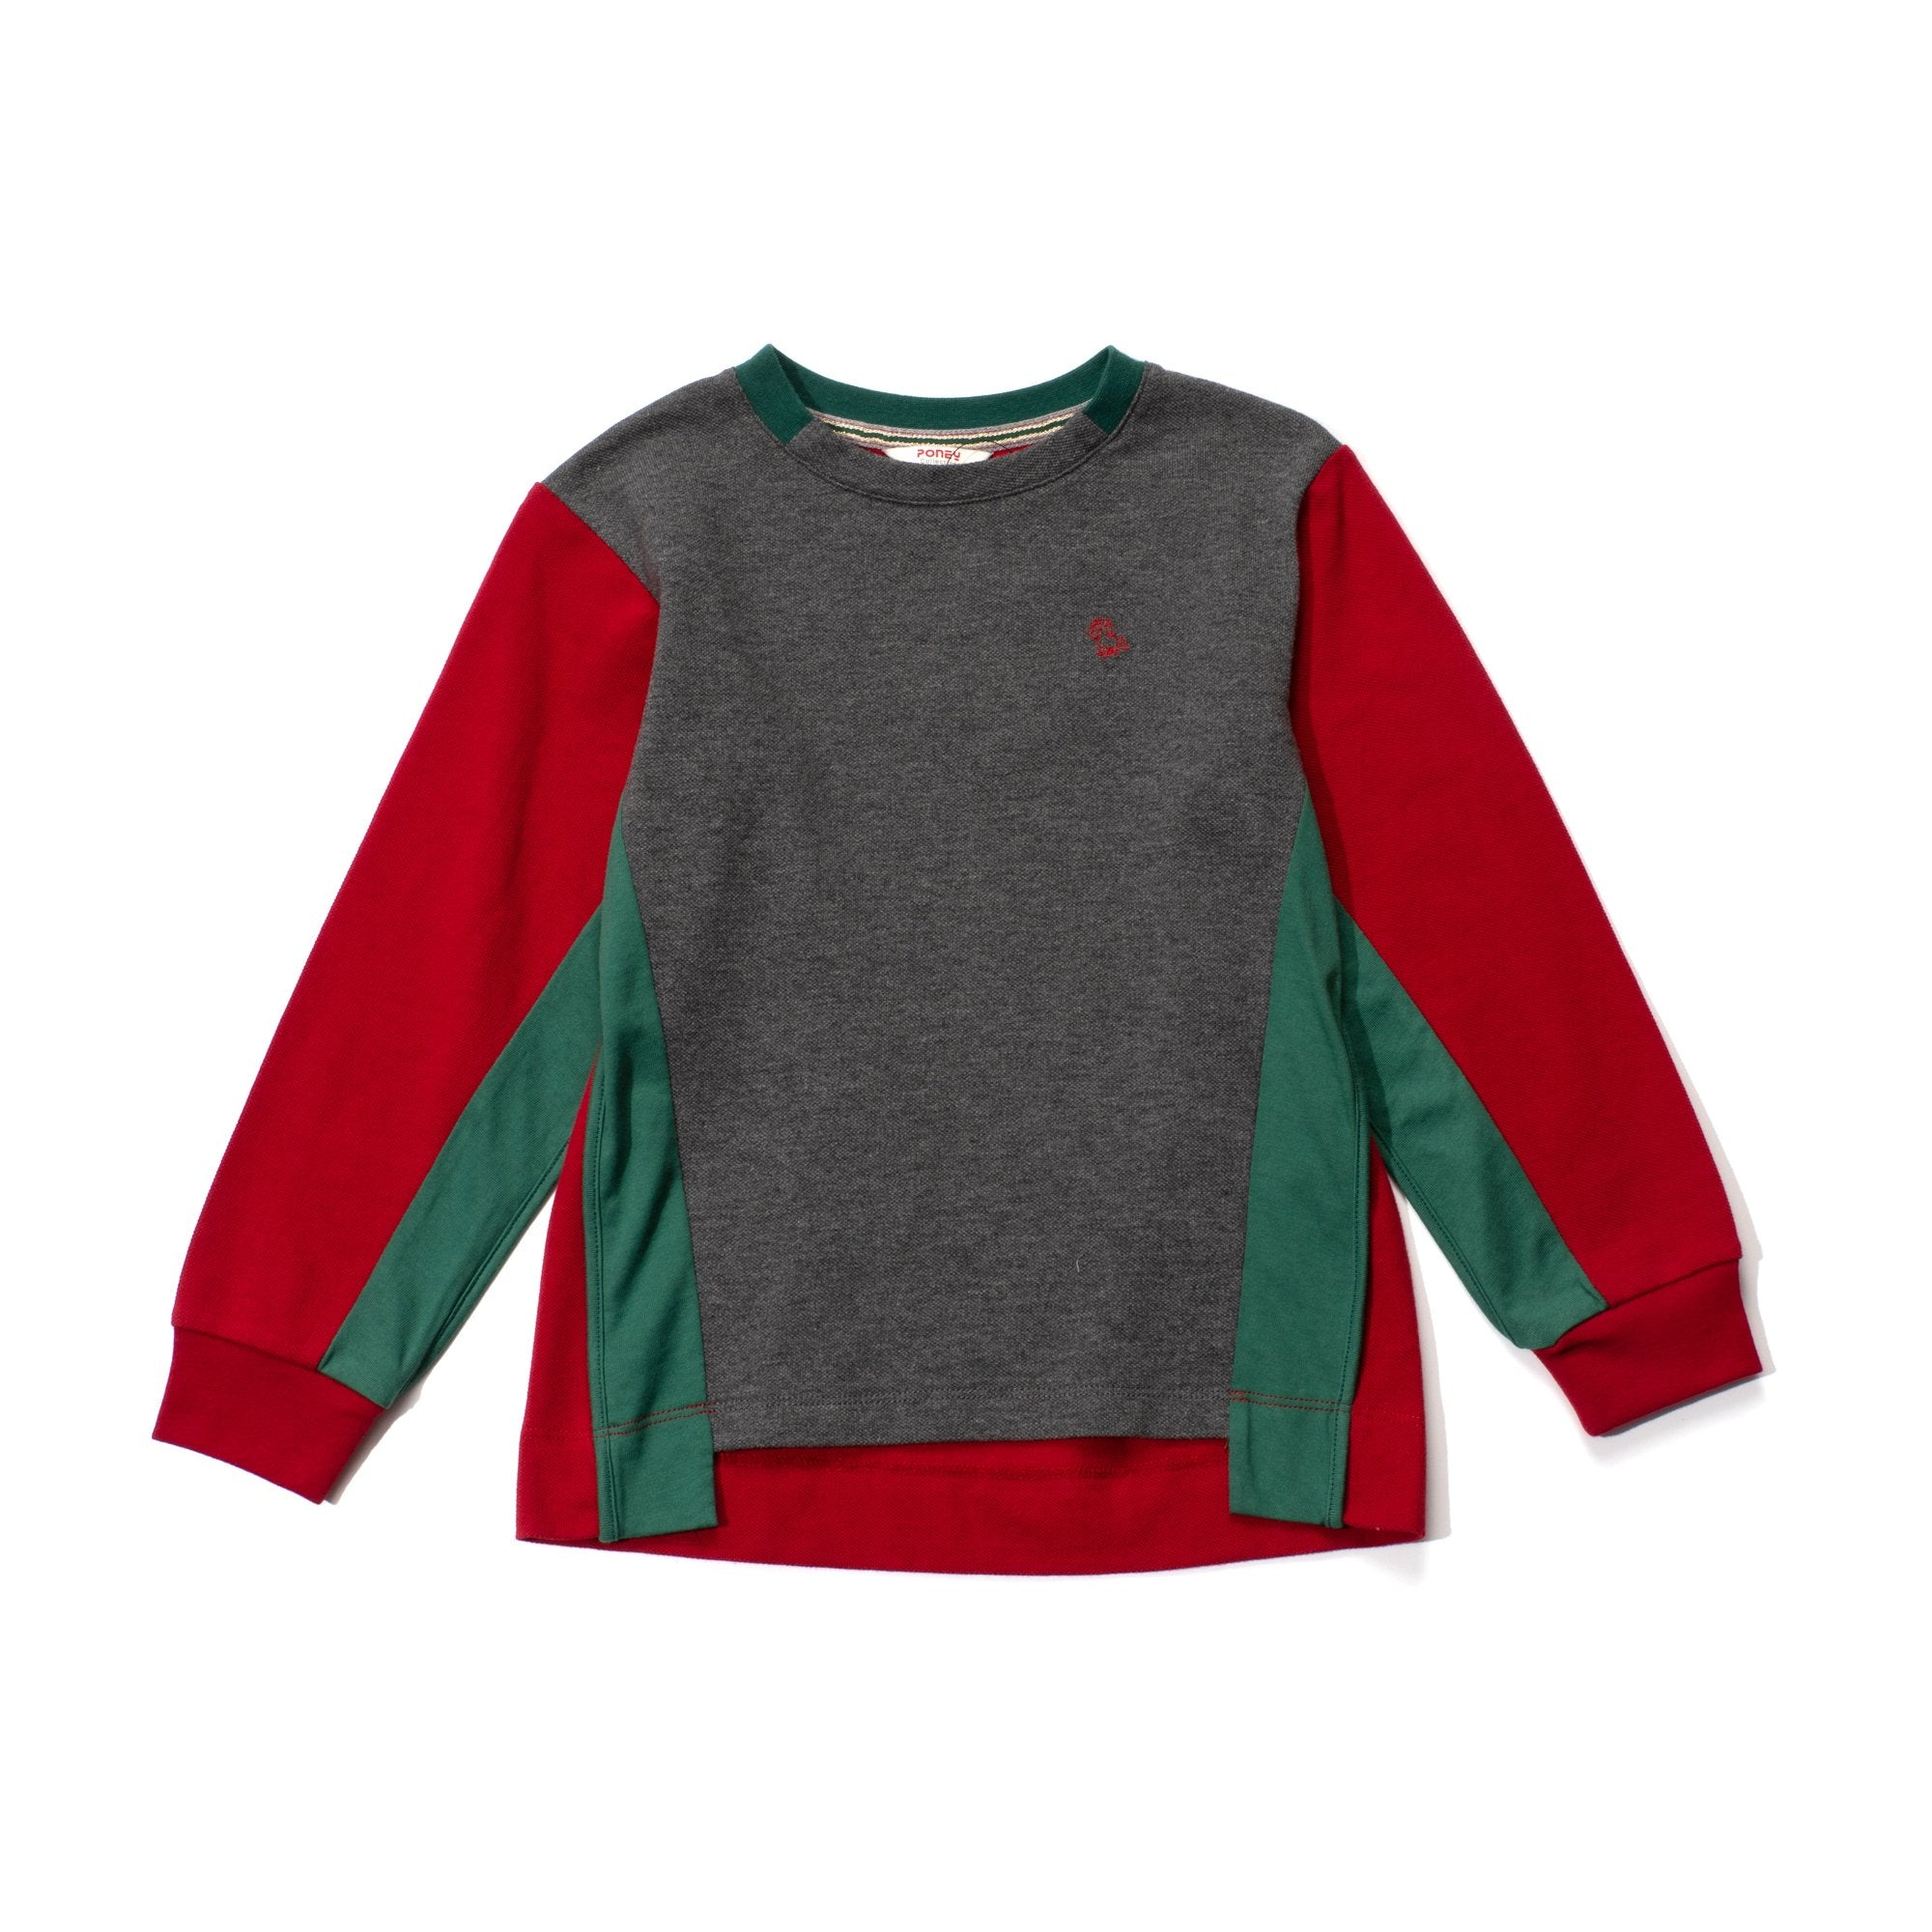 [Raya]Poney Boys Long Sleeve Sweater 1909